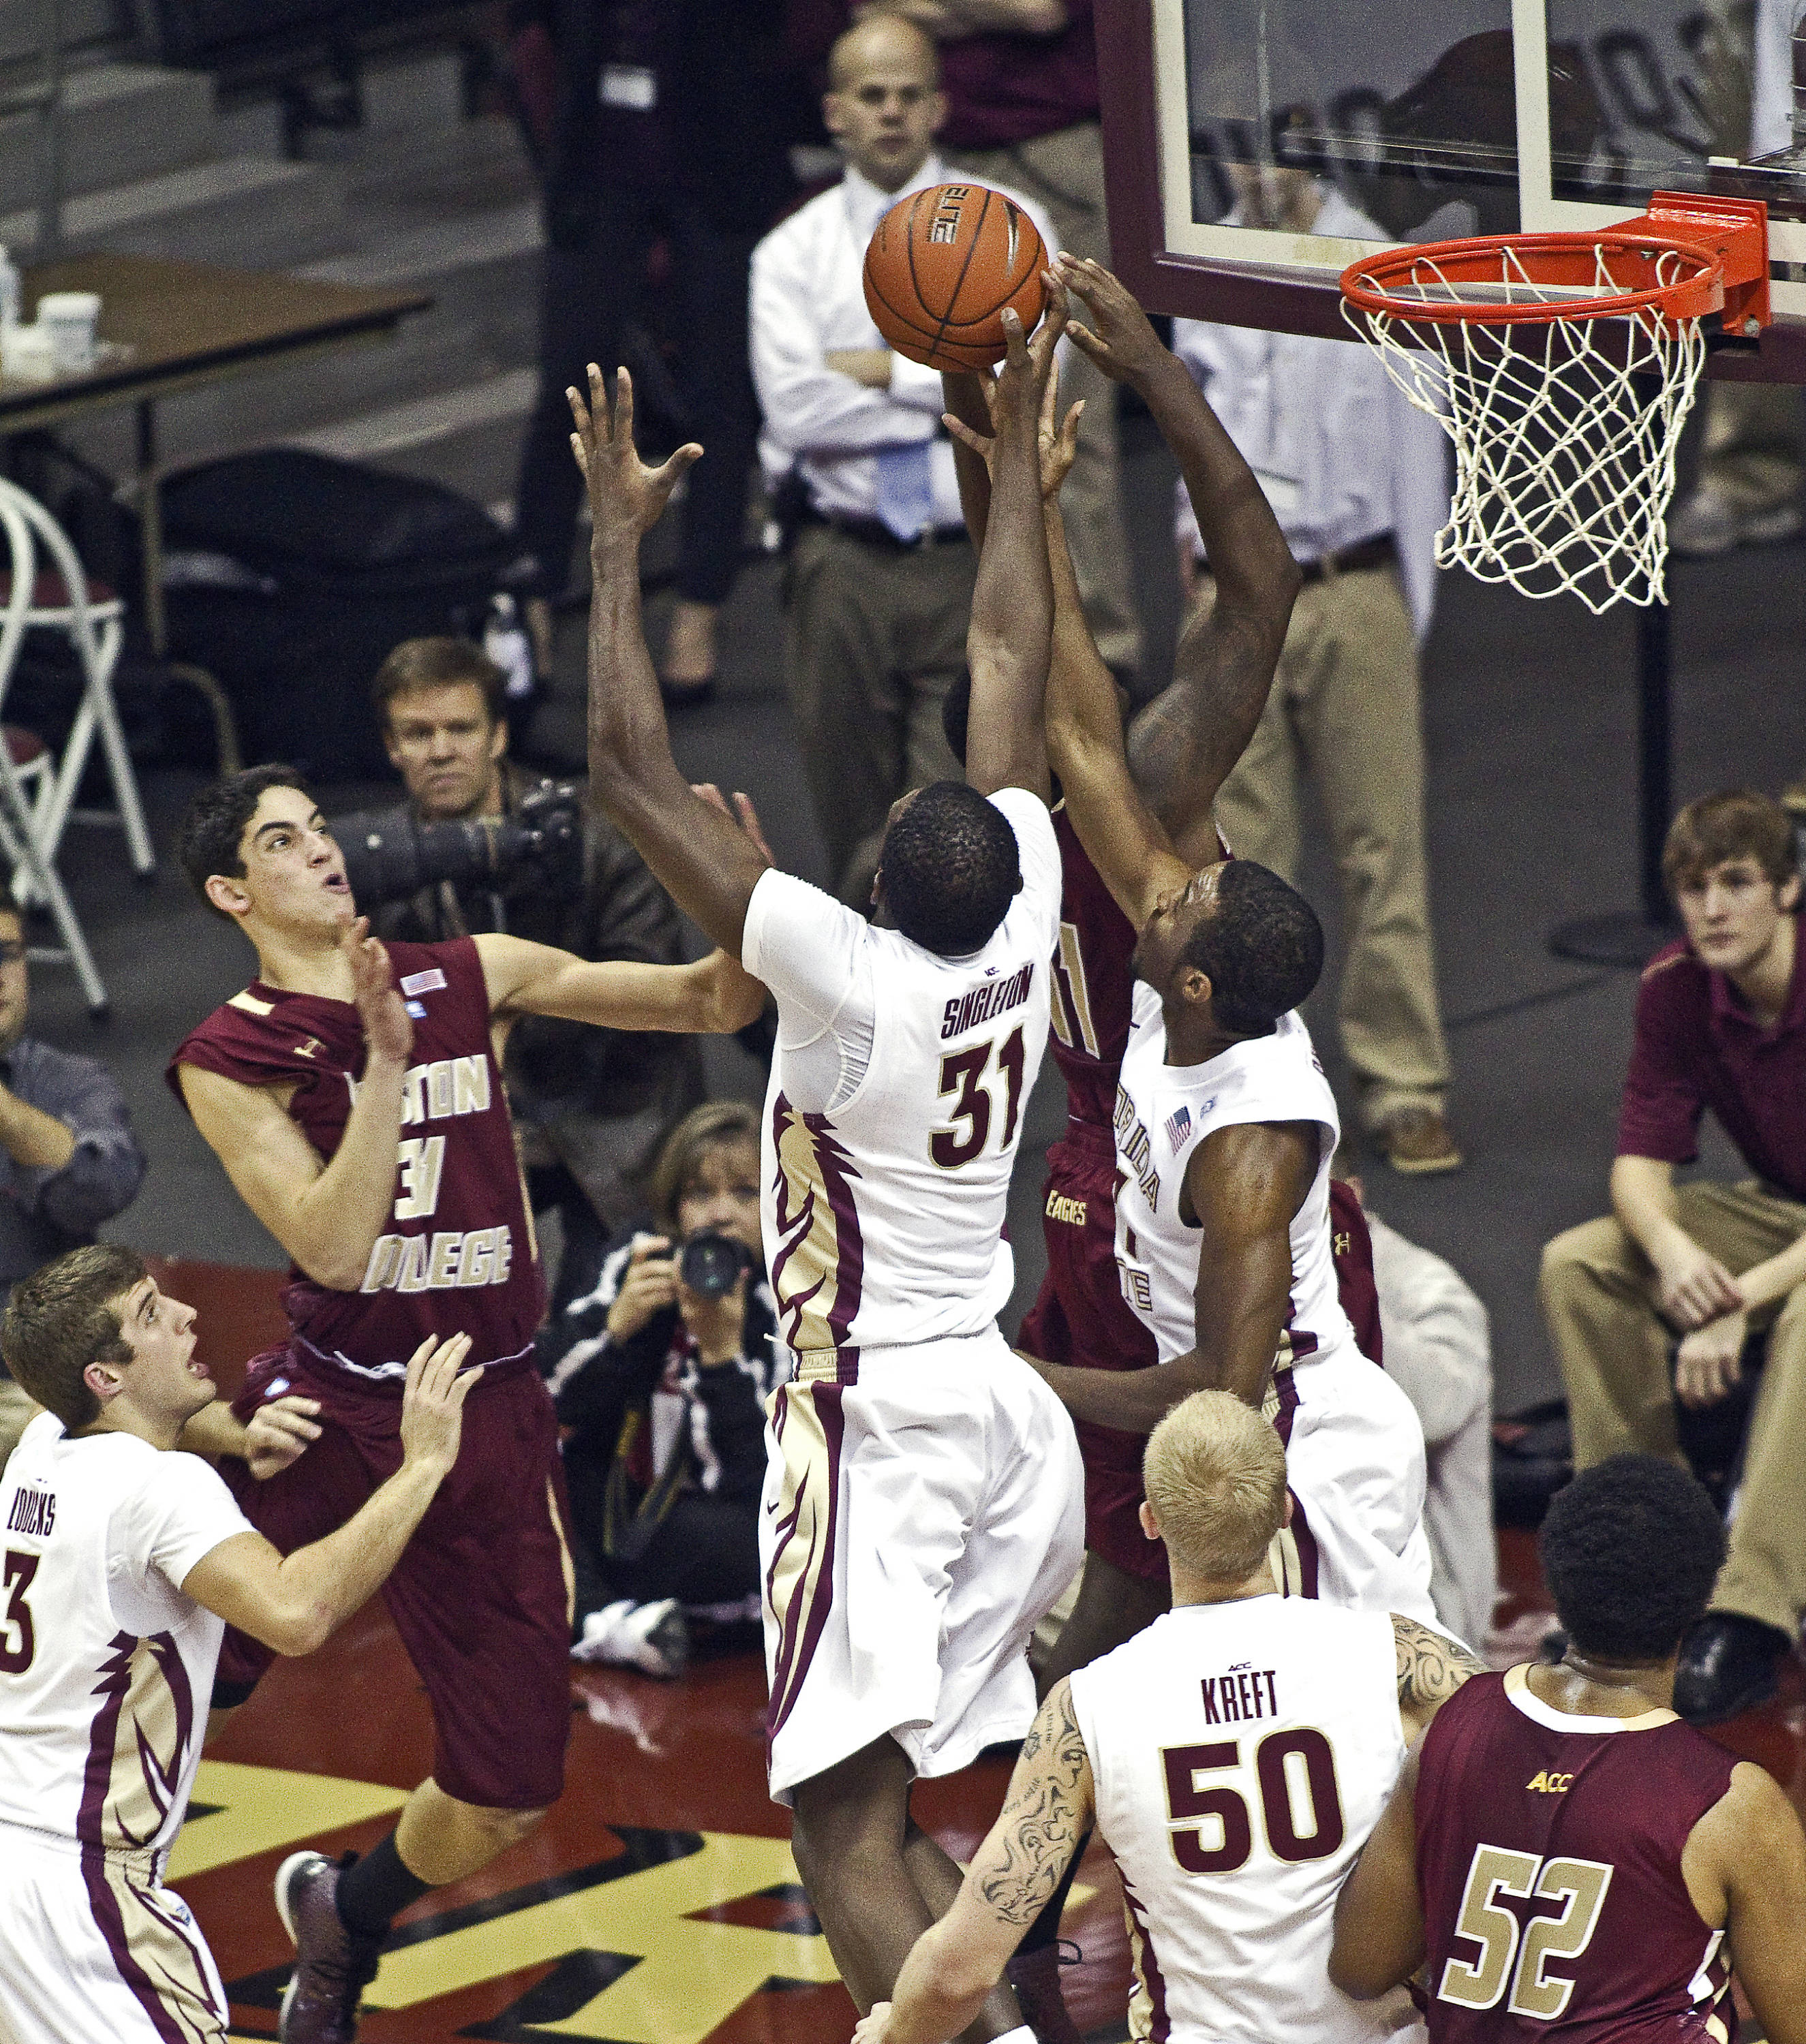 FSU vs Boston College - 01/22/11 - Chris Singleton (31), Michael Snaer (21), Jon Kreft (50), Luke Loucks (3)